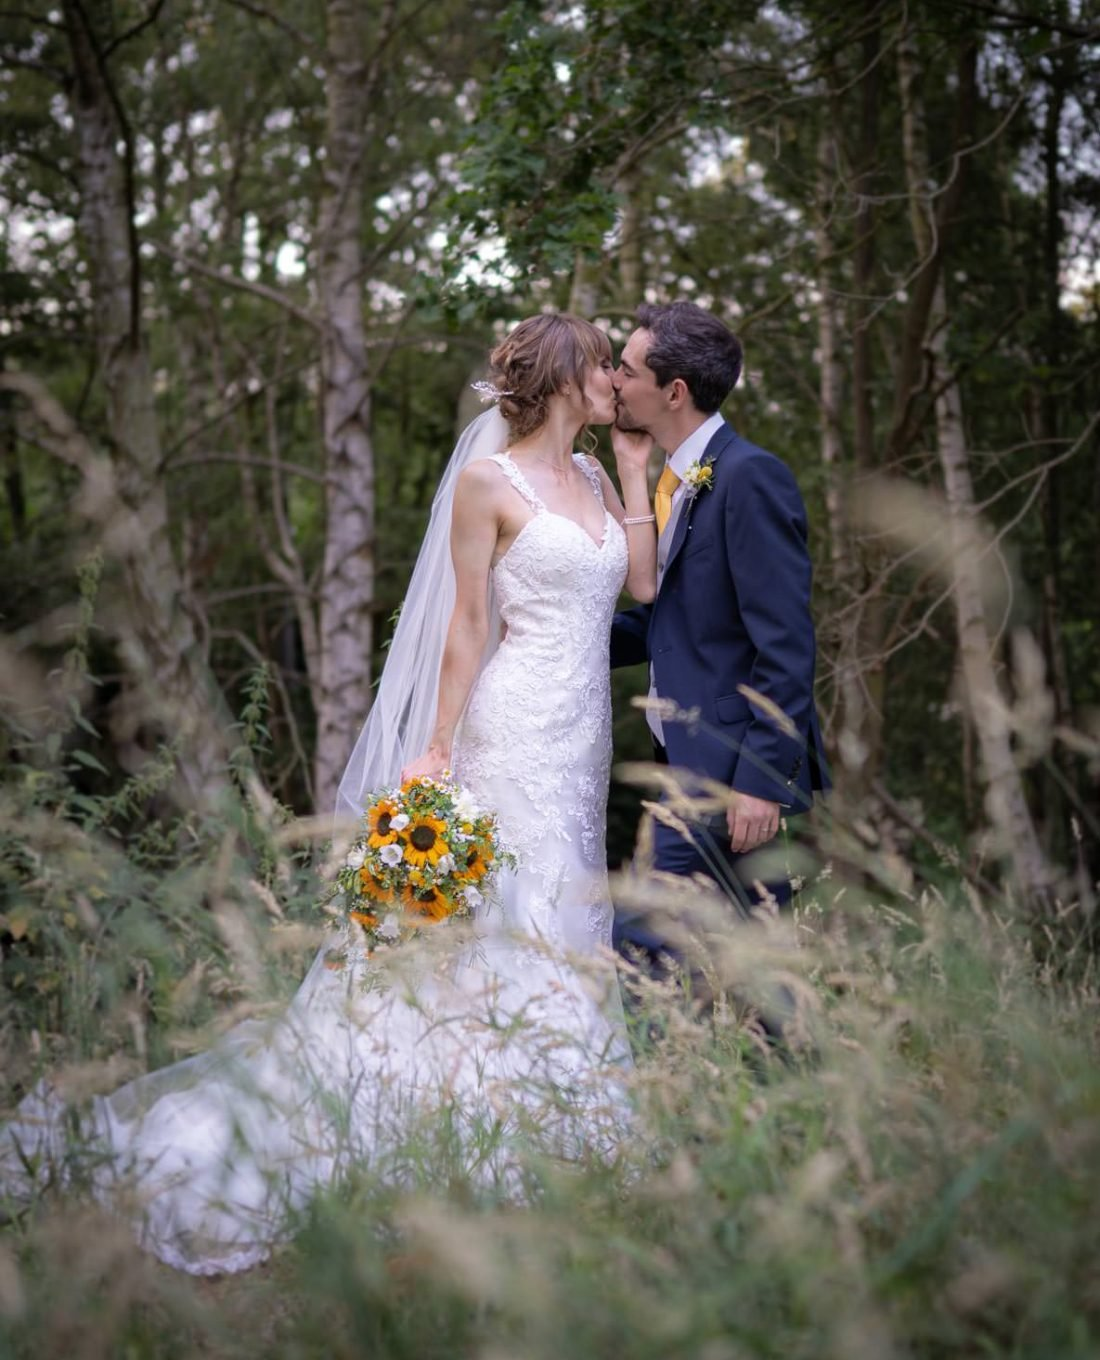 Bride and groom kissing in a meadow of wild grasses